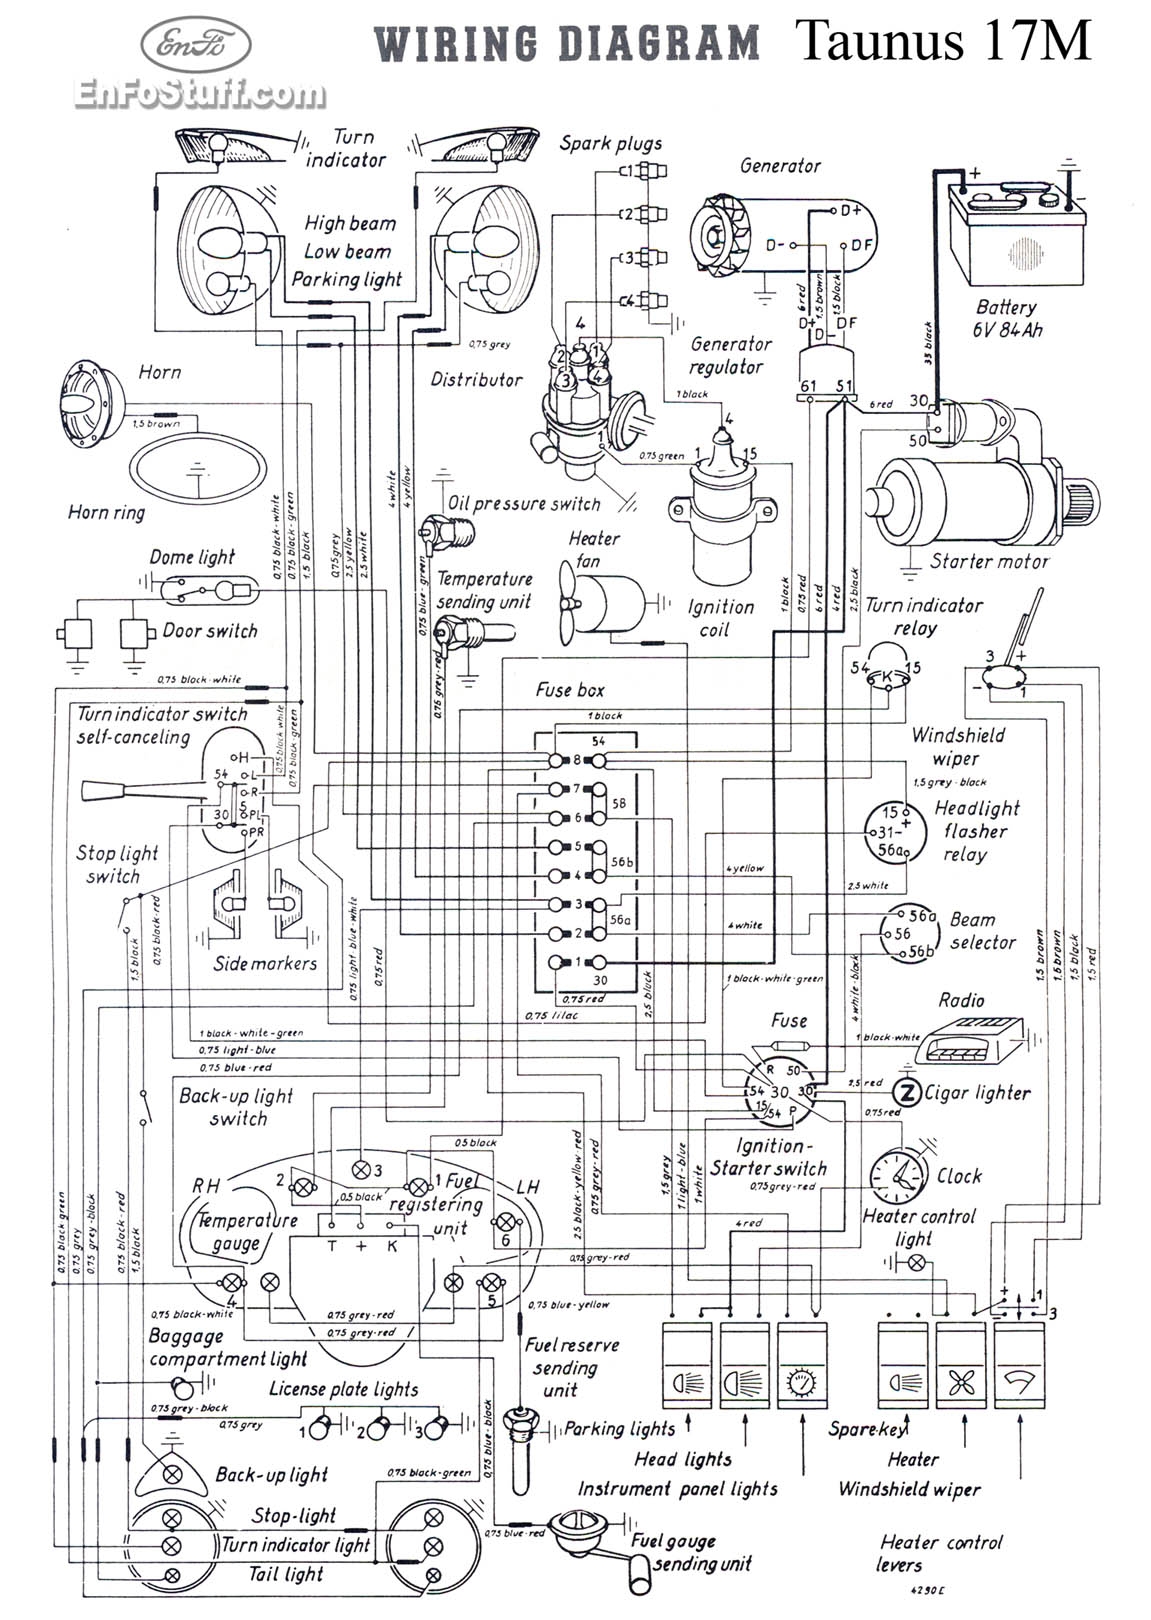 1974 super beetle engine diagram